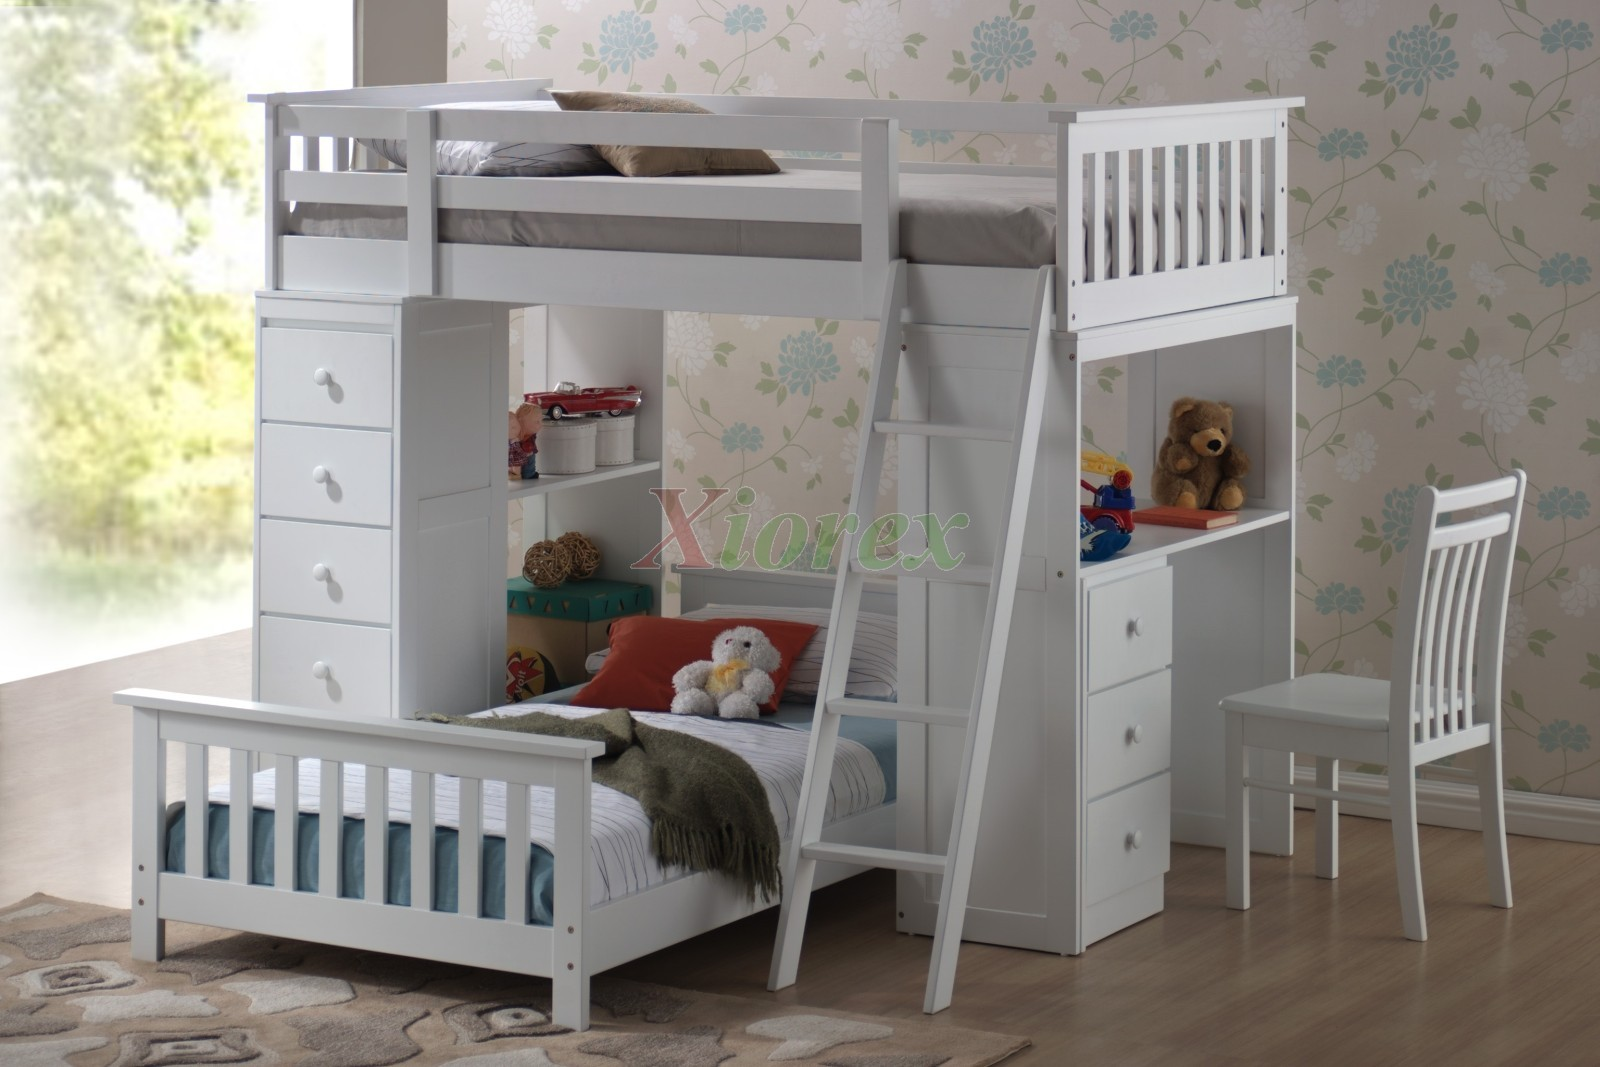 Huckleberry Loft Bunk Beds For Kids With Storage Amp Desk